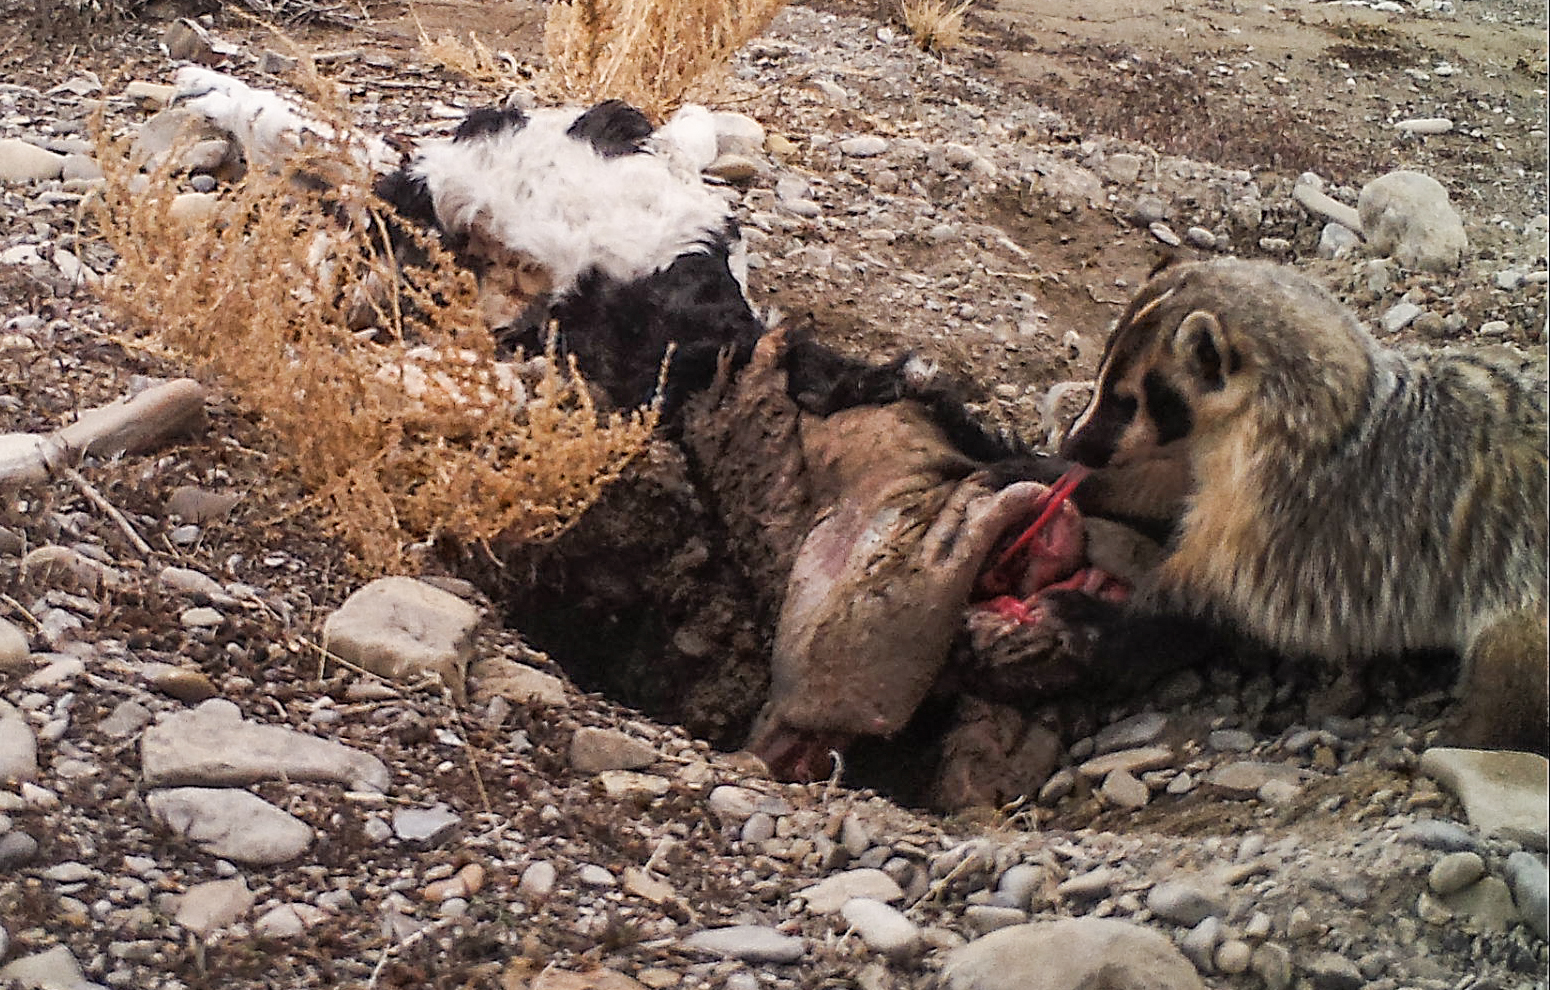 Badger buries cow carcass, discovering previously unknown behavior. (Courtesy Evan Buechley)